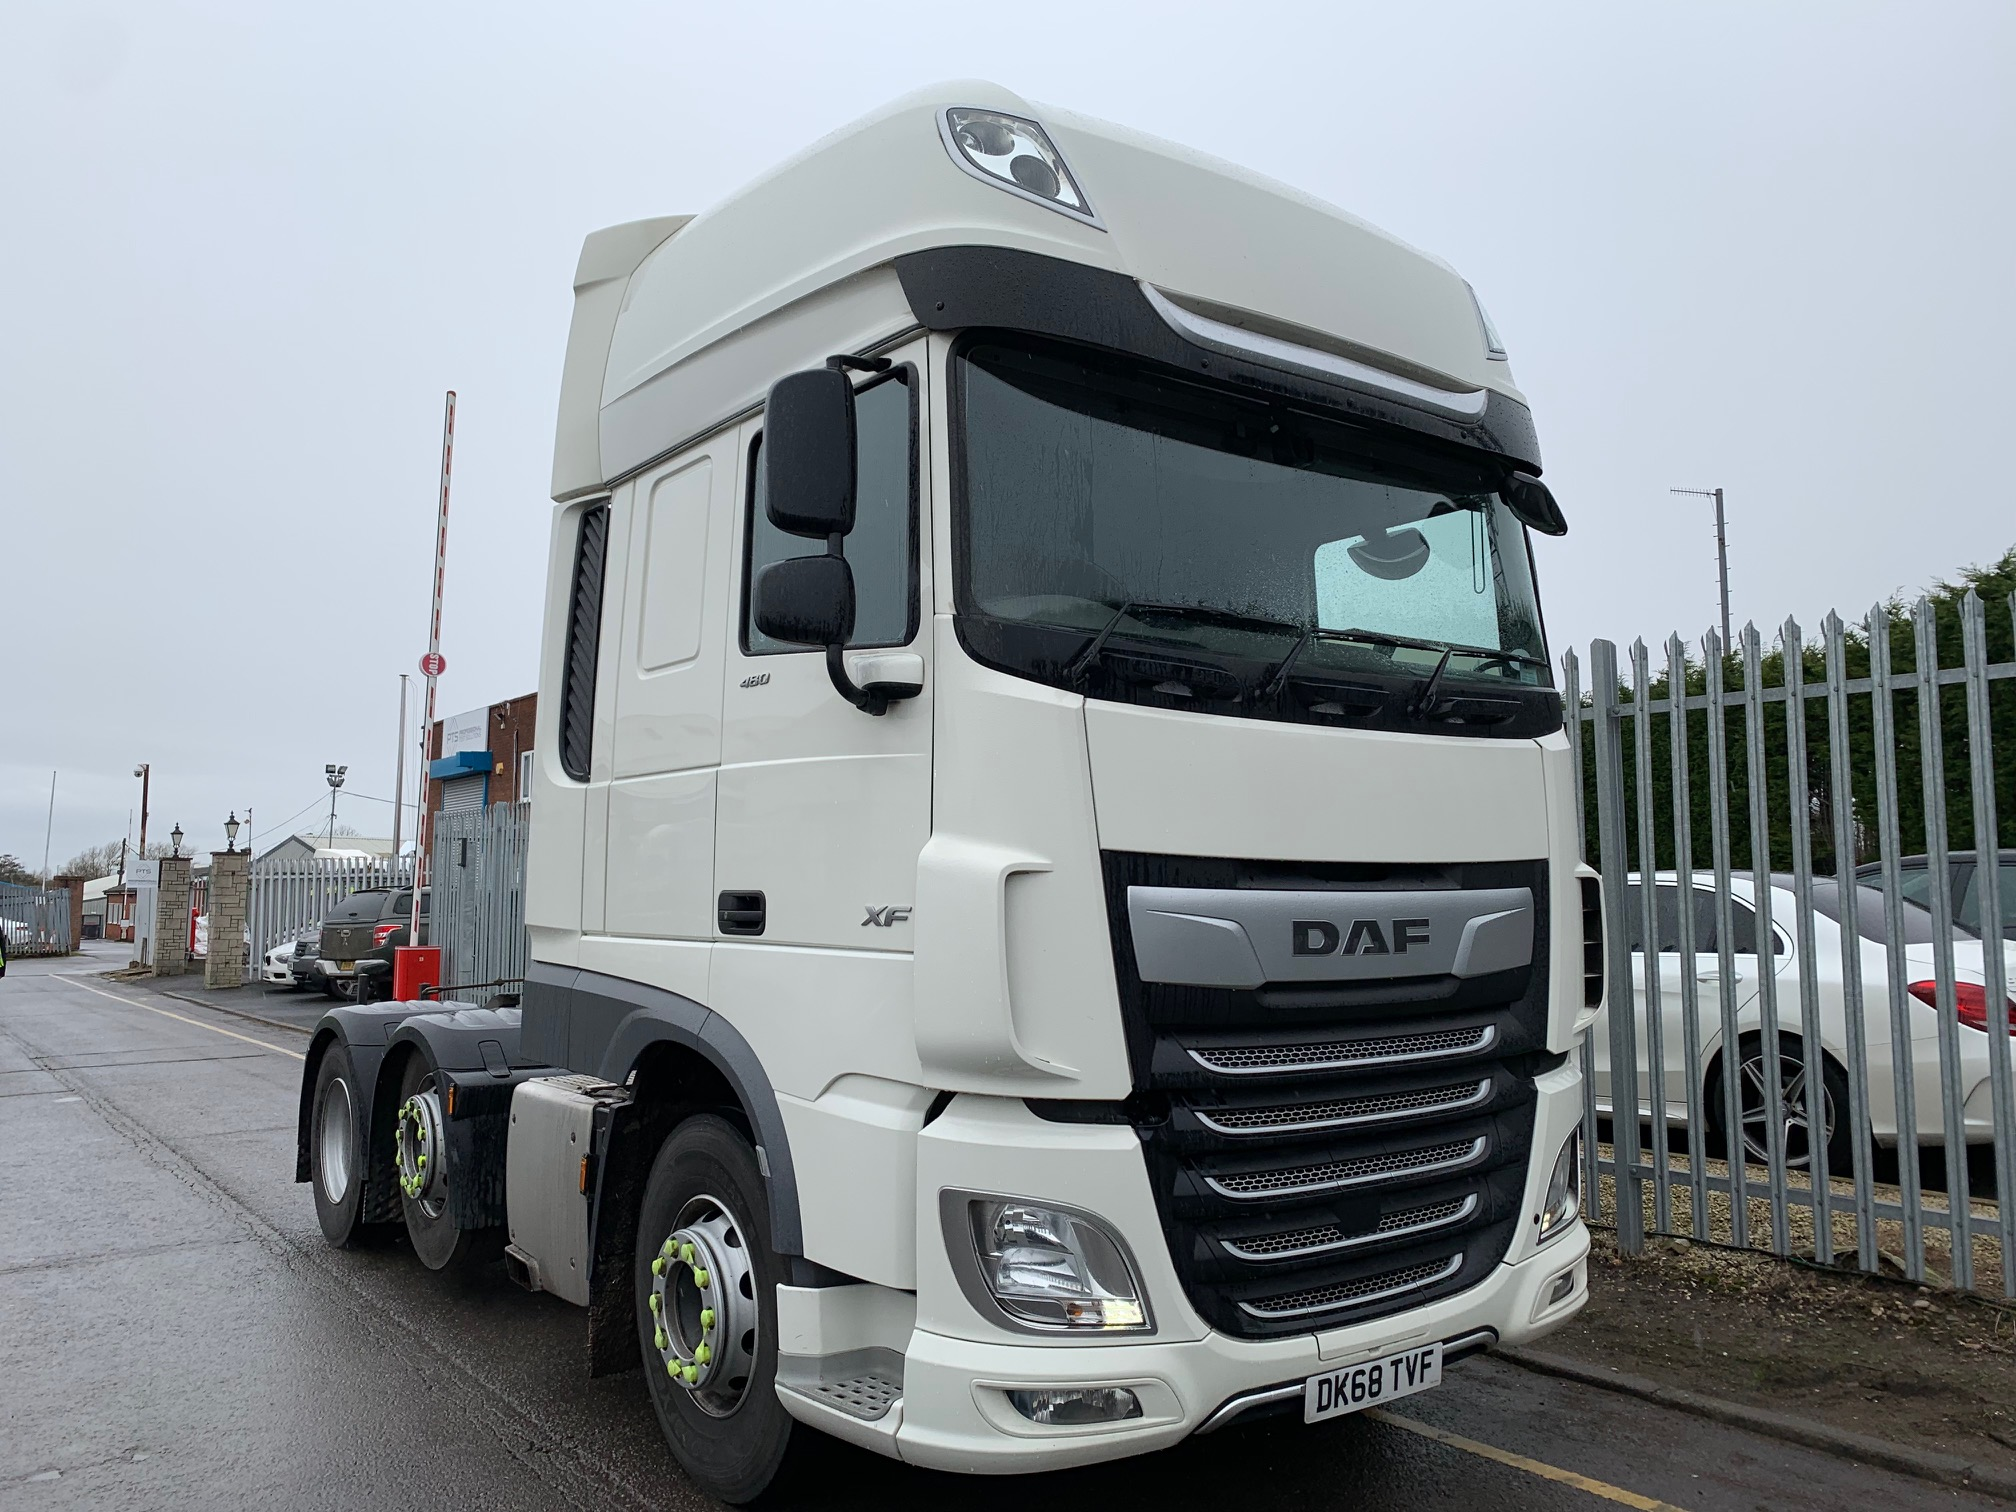 2018 (68) DAF XF. 480bhp, Euro 6, Superspace Twin Sleeper Cab, AS Tronic Automatic Gearbox, 3.95m Wheelbase, Steering Wheel Controls, Mid-Lift Axle, Fridge. Warranty Available.